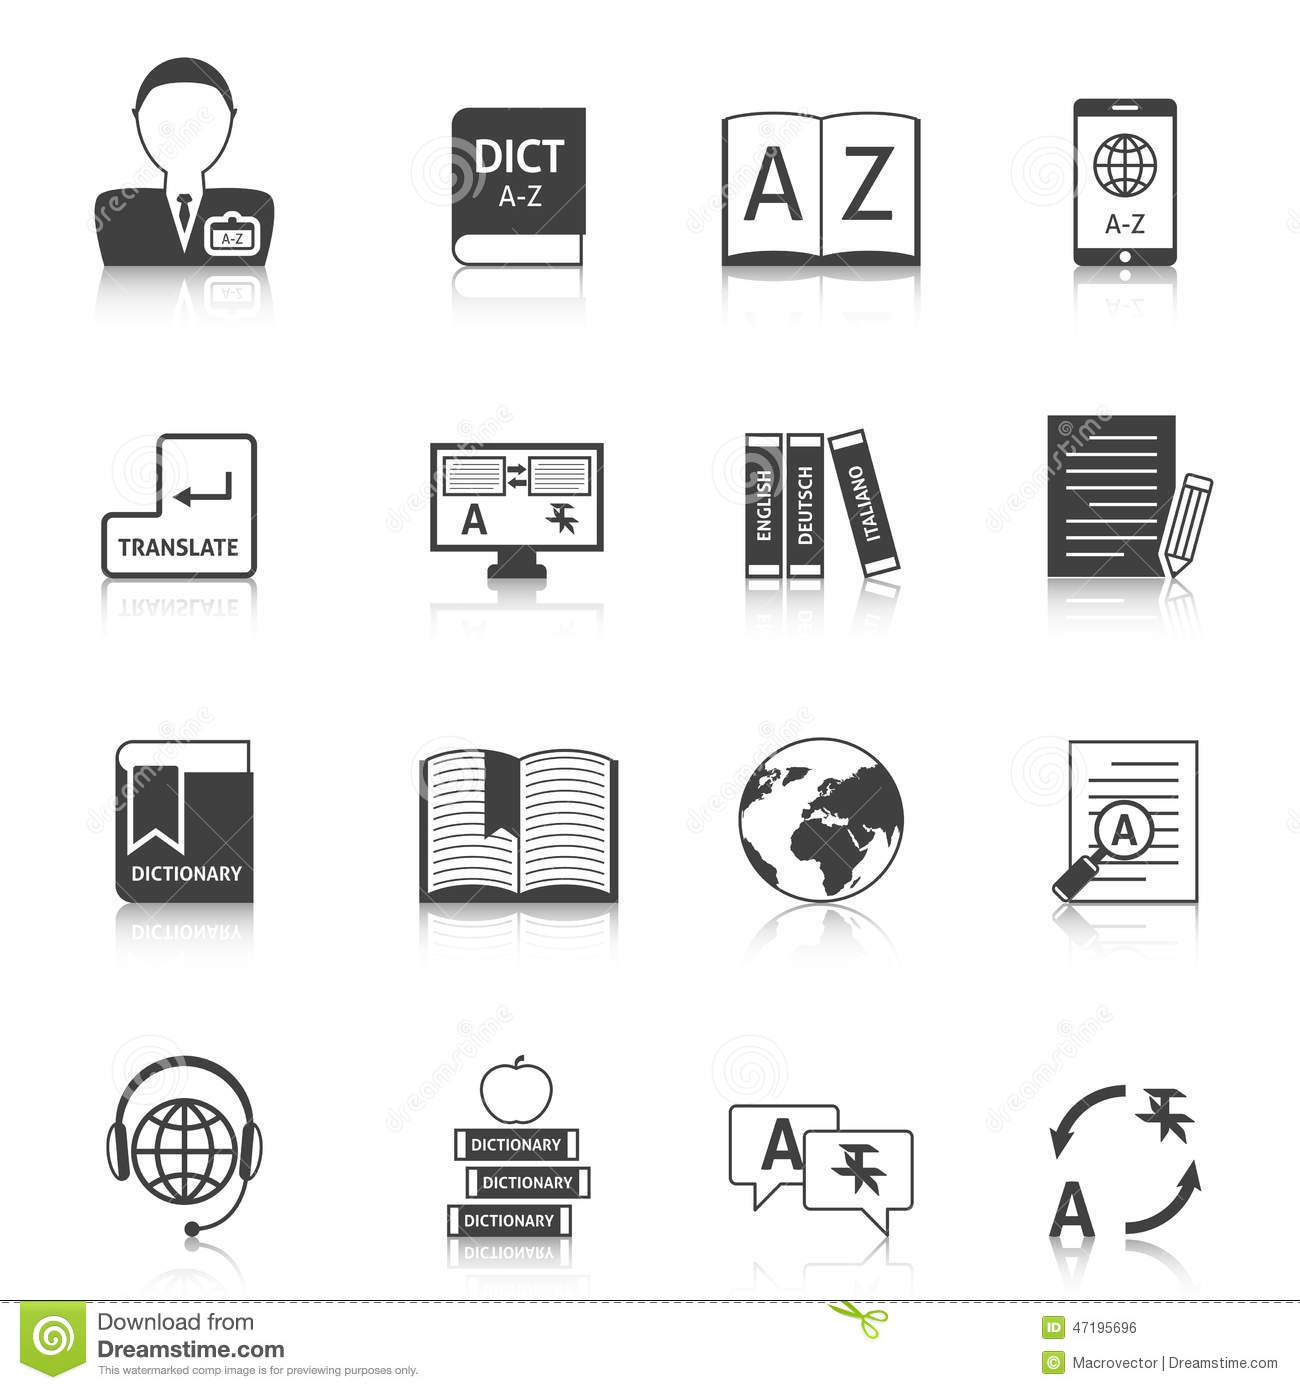 Collection of online dictionaries: a selection of sites